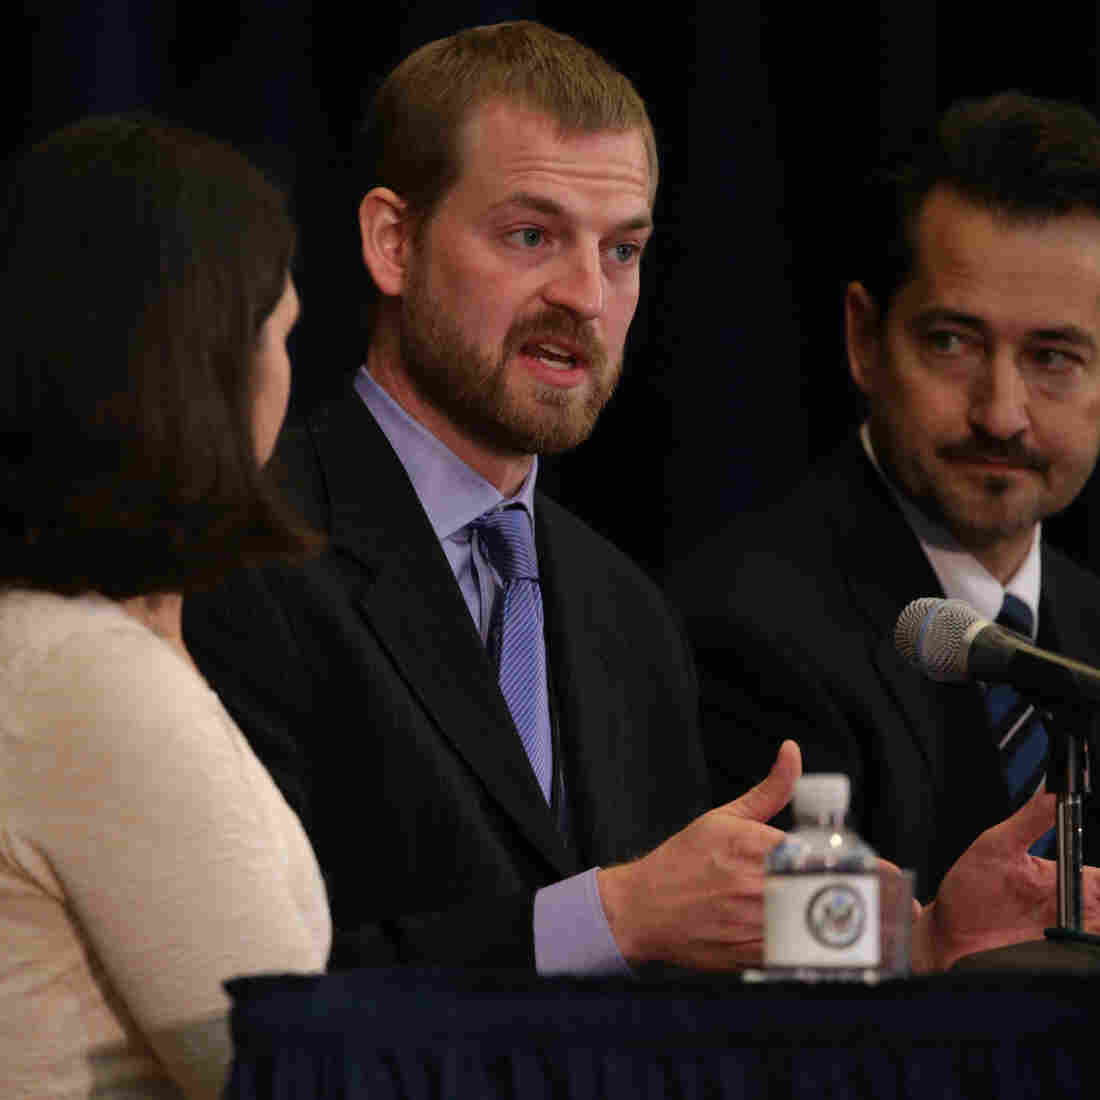 Dr. Kent Brantly speaks about the world's response to Ebola during the Overseas Security Advisory Council's Annual Briefing in Washington, D.C. last month.